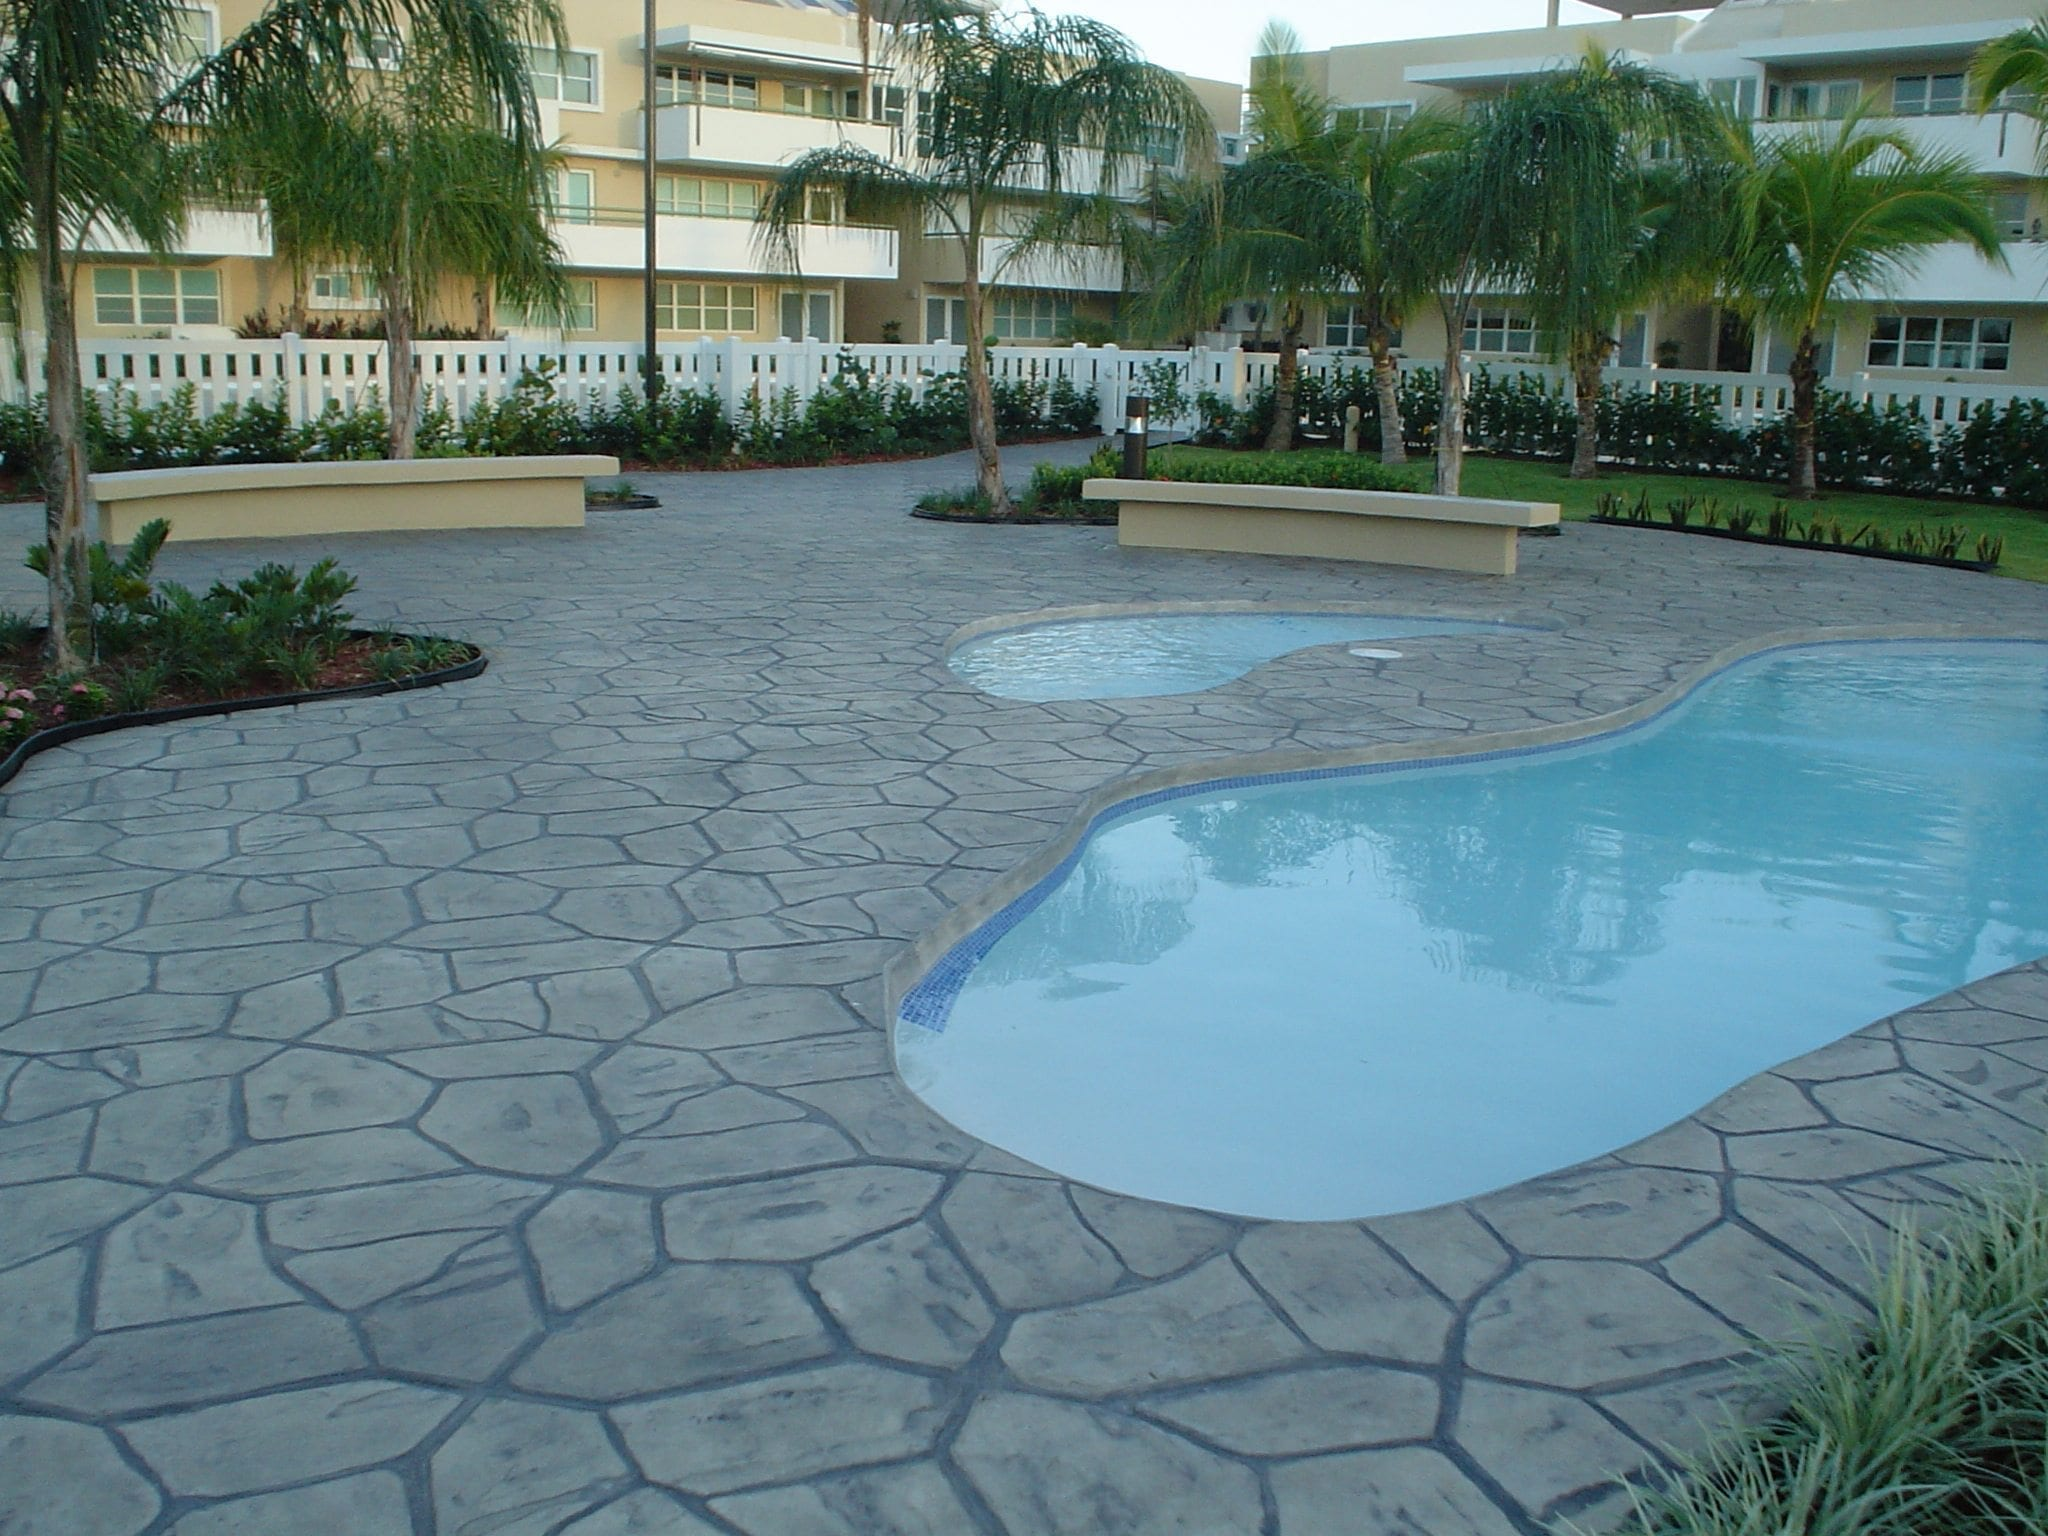 Decorative Concrete Pool Restoration Products